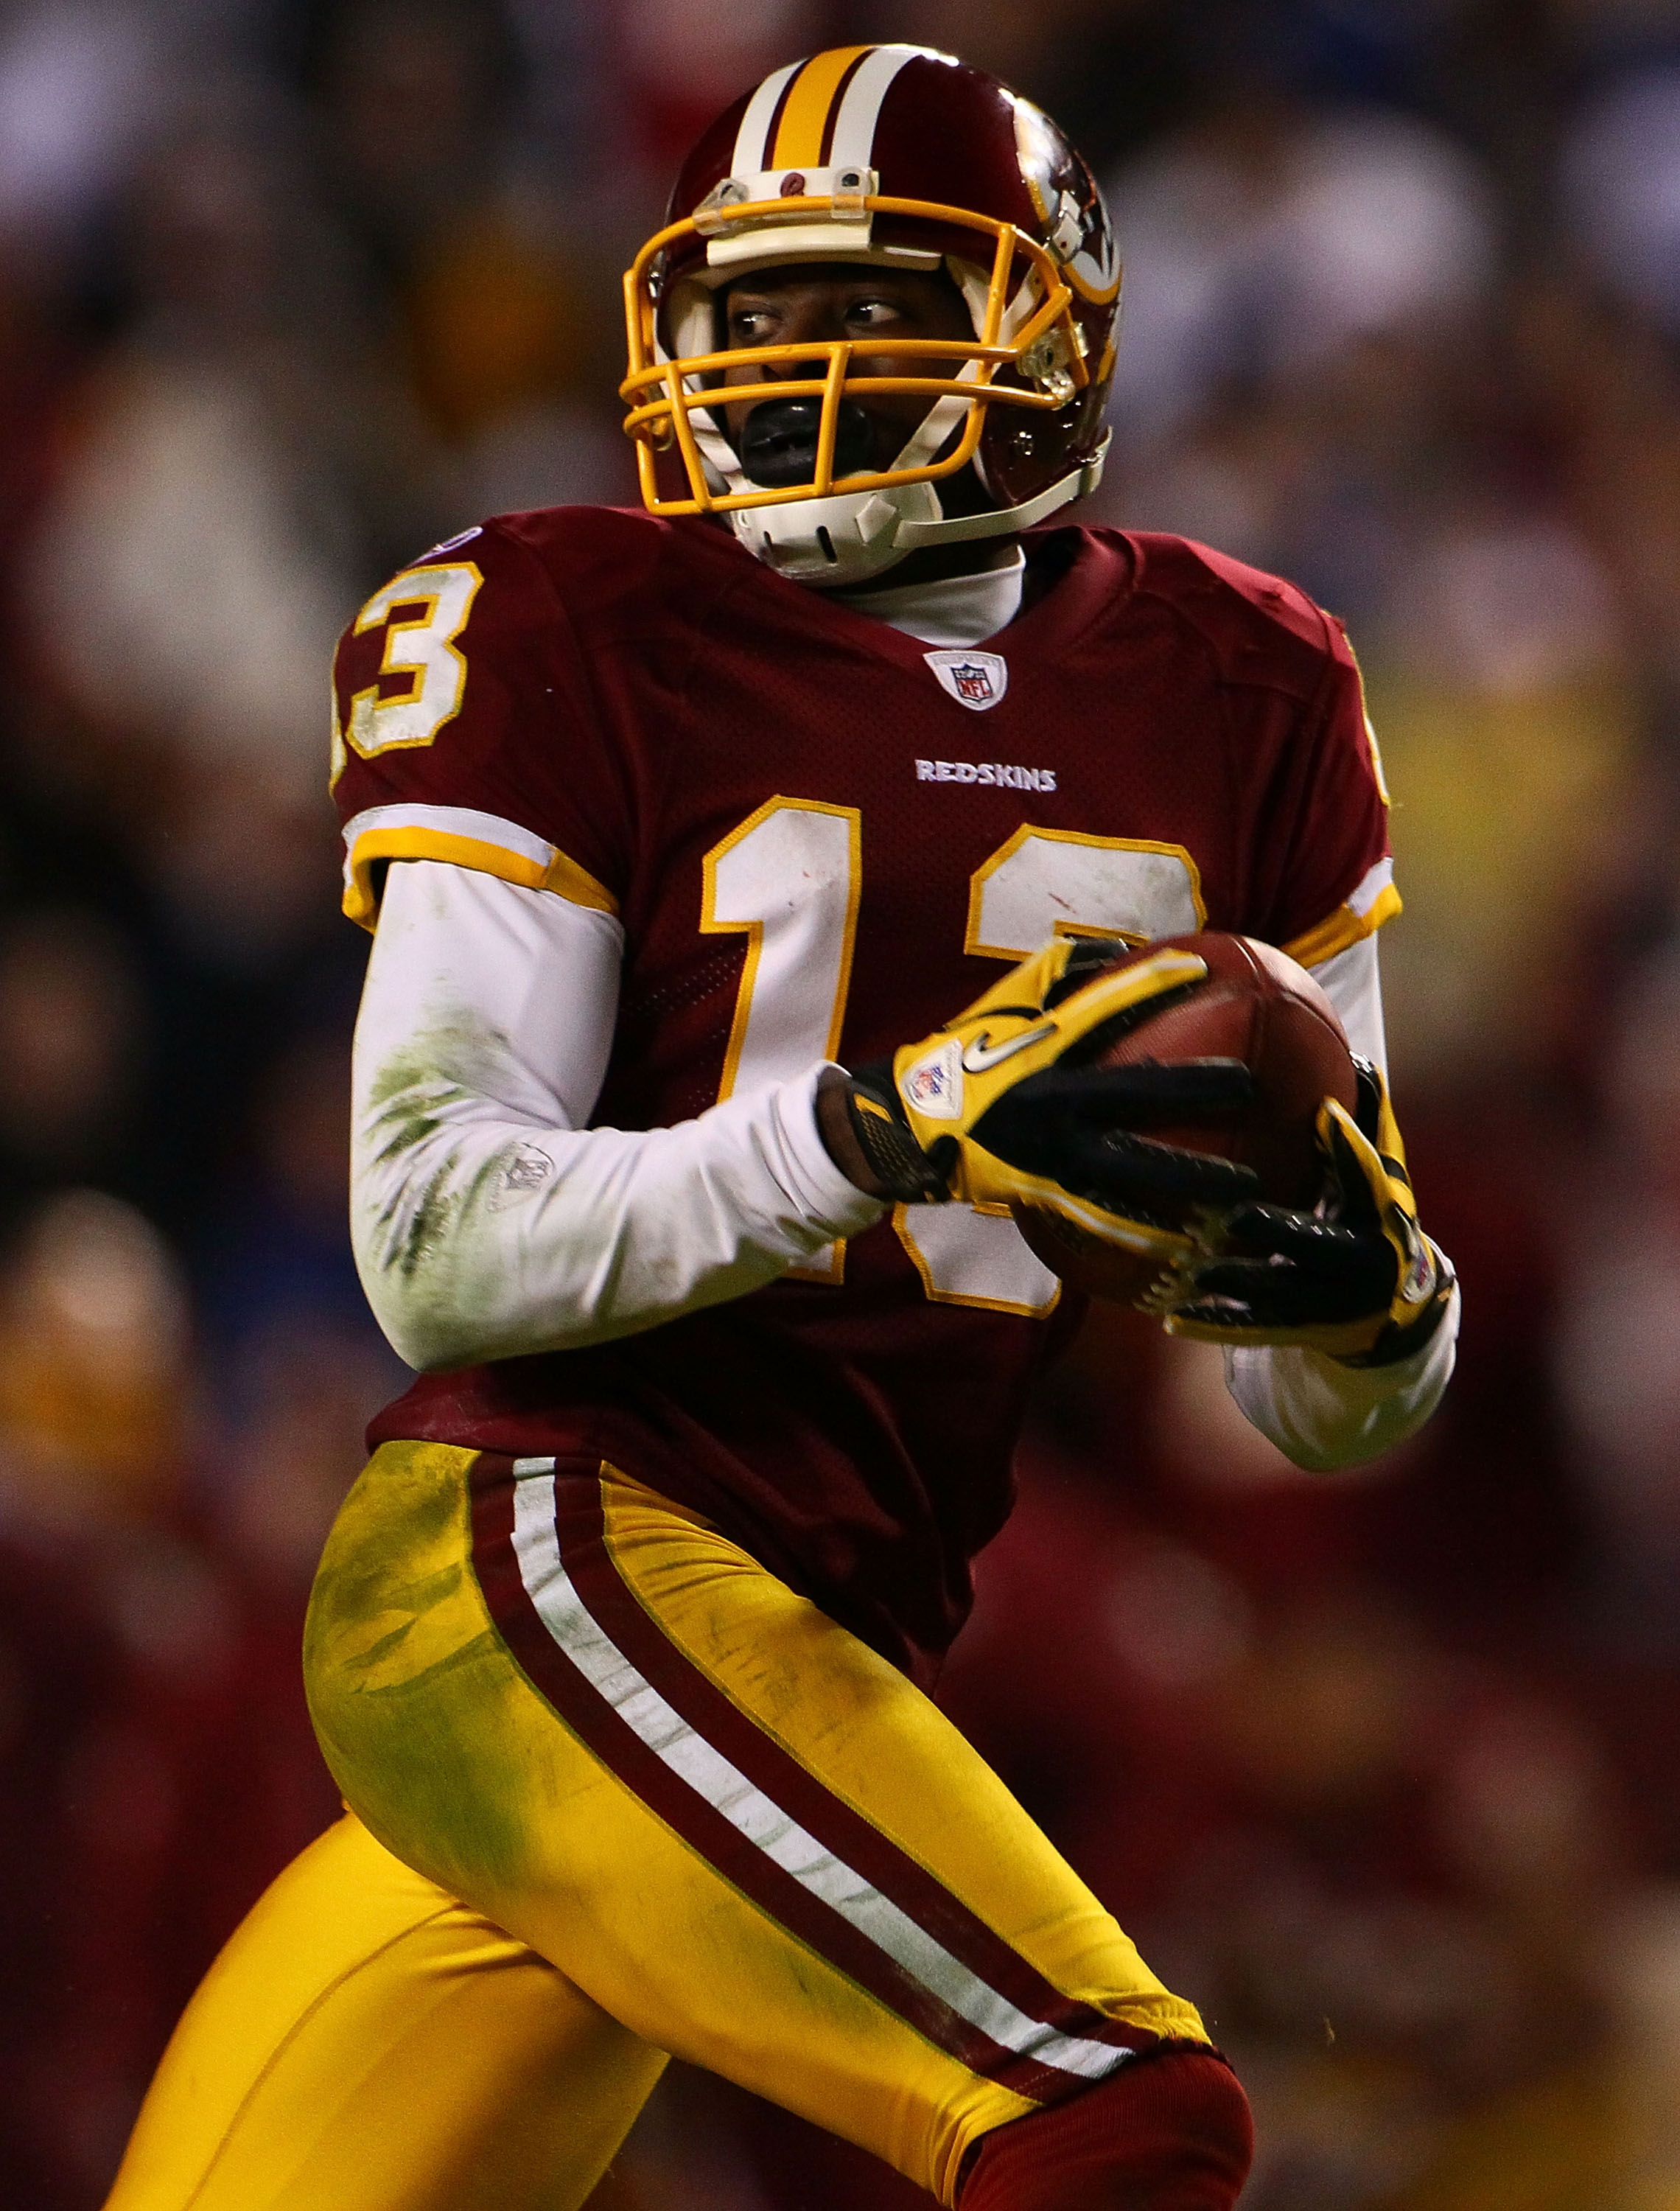 LANDOVER, MD - JANUARY 02:  Wide receiver Anthony Armstrong #13 of the Washington Redskins catches a touchdown pass against the New York Giants during a game at FedEx Field on January 2, 2011 in Landover, Maryland. The Giants won the game 17-14.  (Photo b